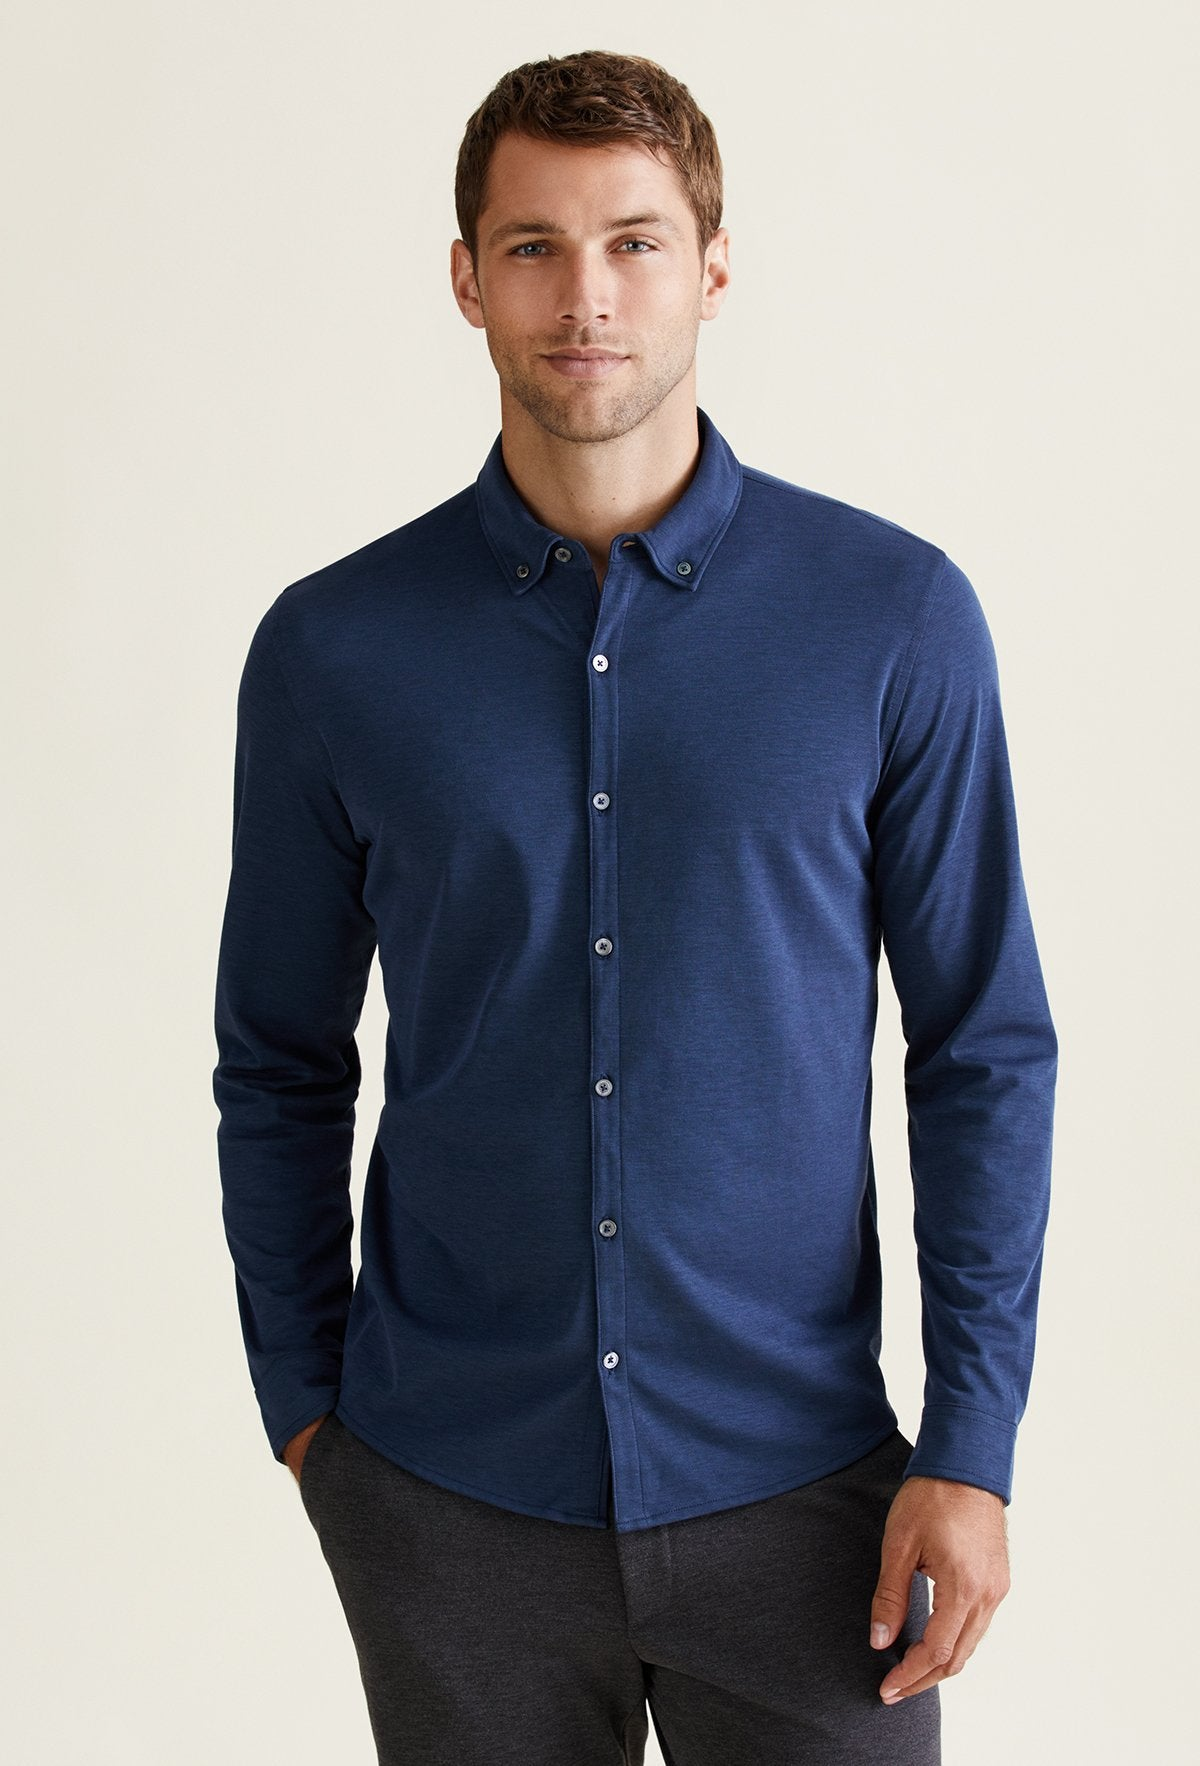 men's long sleeve pima cotton shirt button down